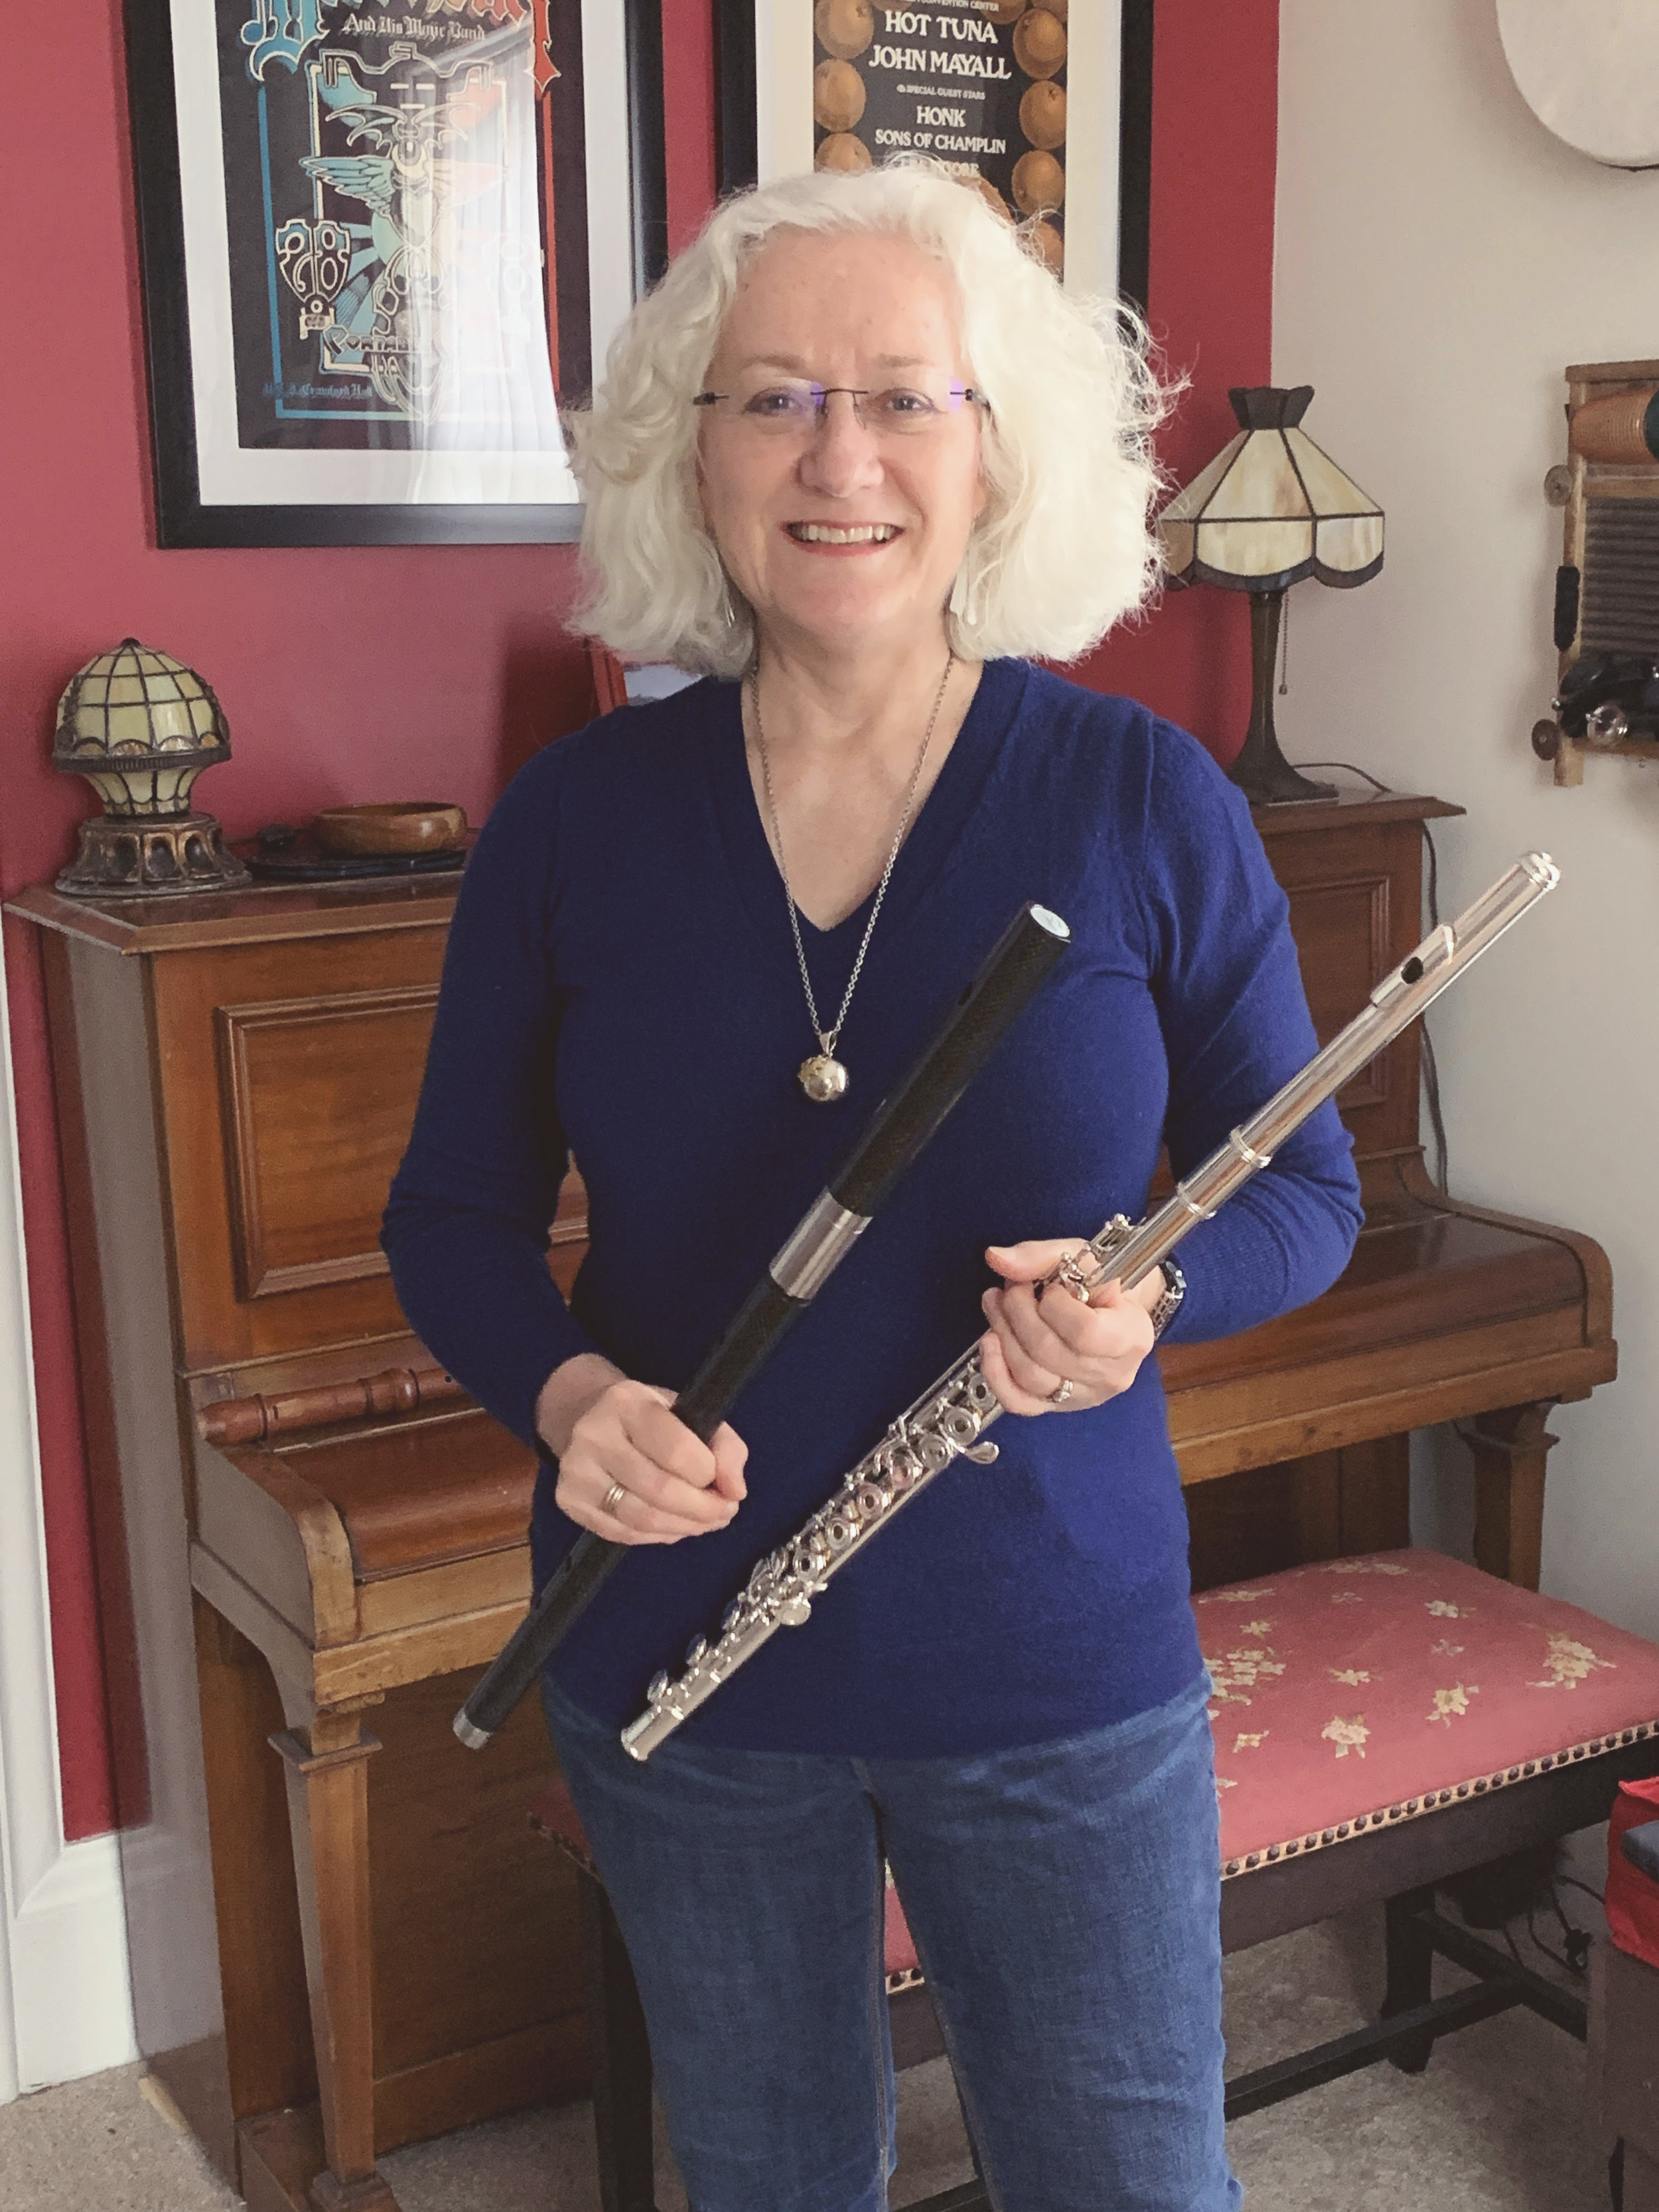 Tricia Snell Flute, Recorder, Whistle  Tricia grew up in a lively music-jamming family and has played in duos, ensembles, and orchestras; currently, she plays in a Celtic Session and sings soprano in a choir. An experienced teacher of all ages, she holds an ARCT in Flute Performance (Toronto Royal Conservatory) and is trained/certified in  Suzuki  (Flute & Recorder) and Music Together pedagogy.